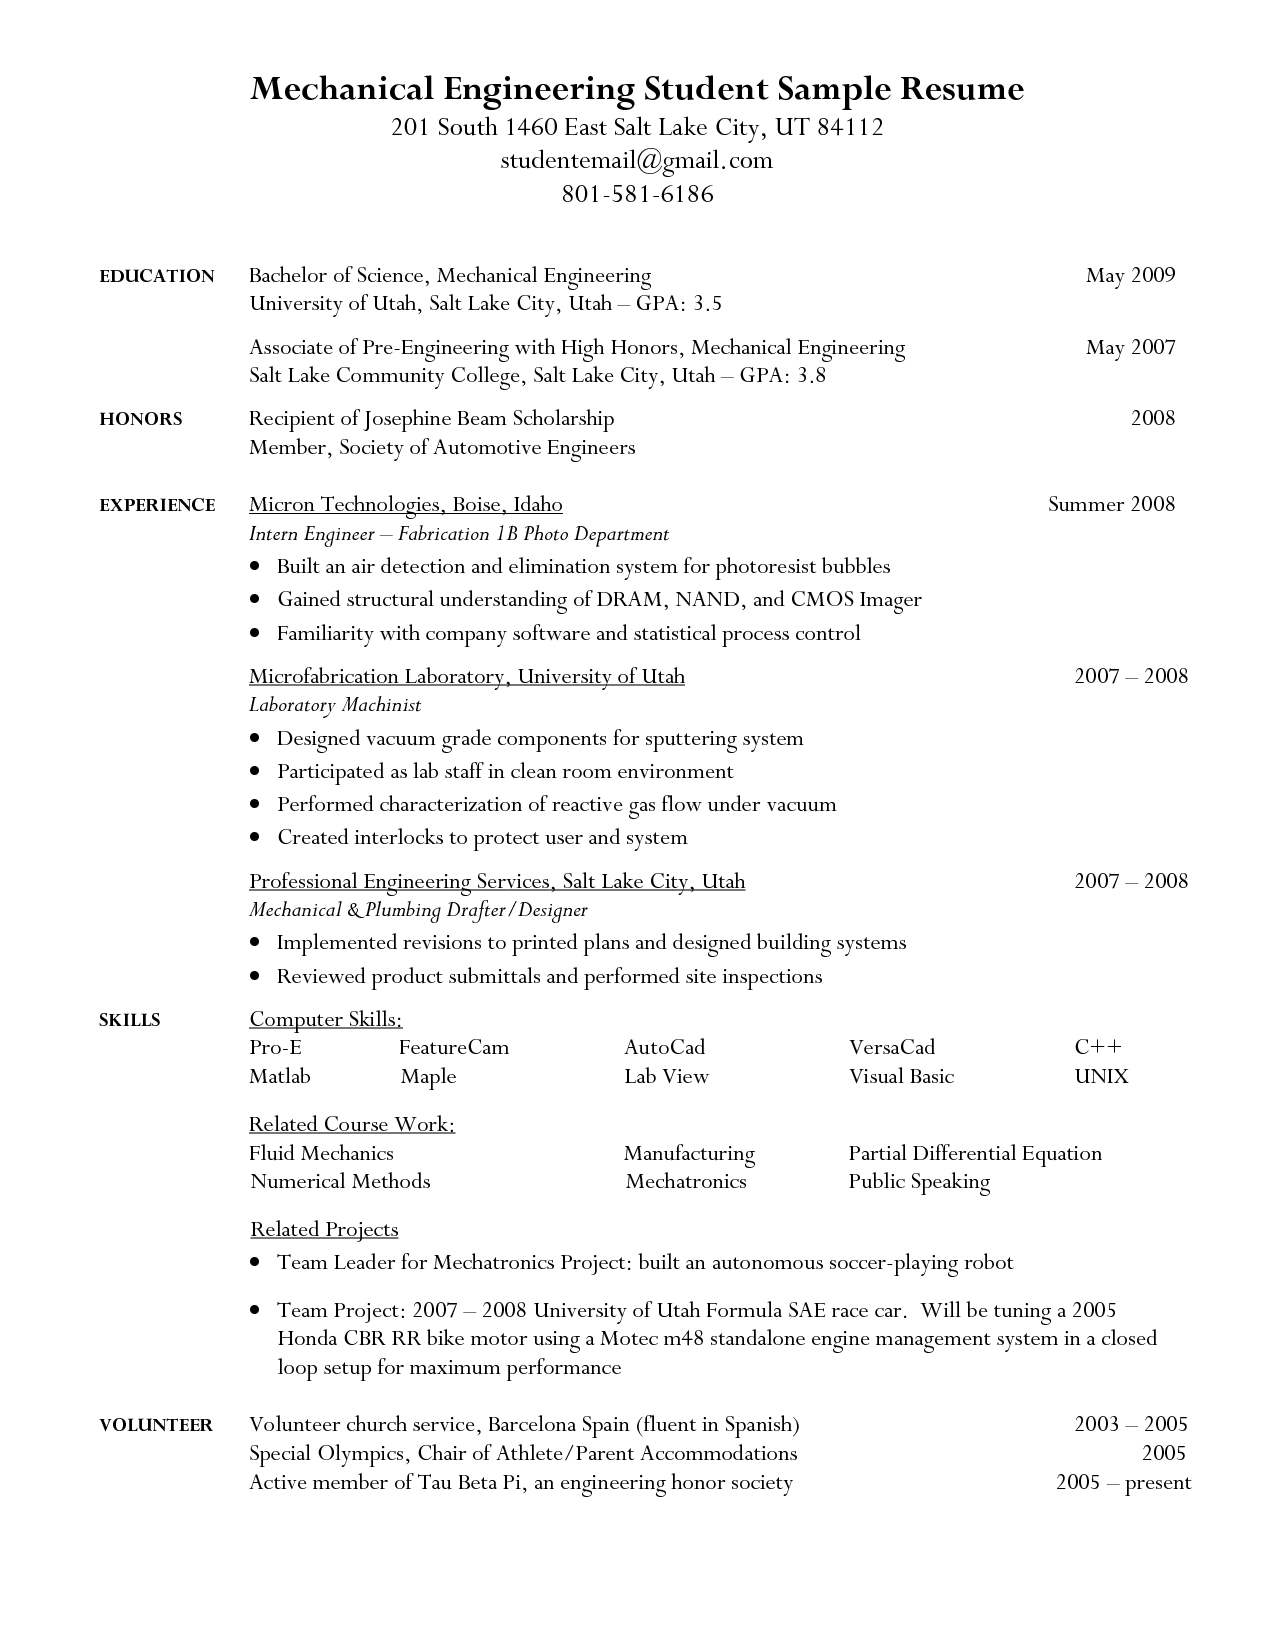 Resume Examples Engineering Engineering Student Resume Google Search Resumes